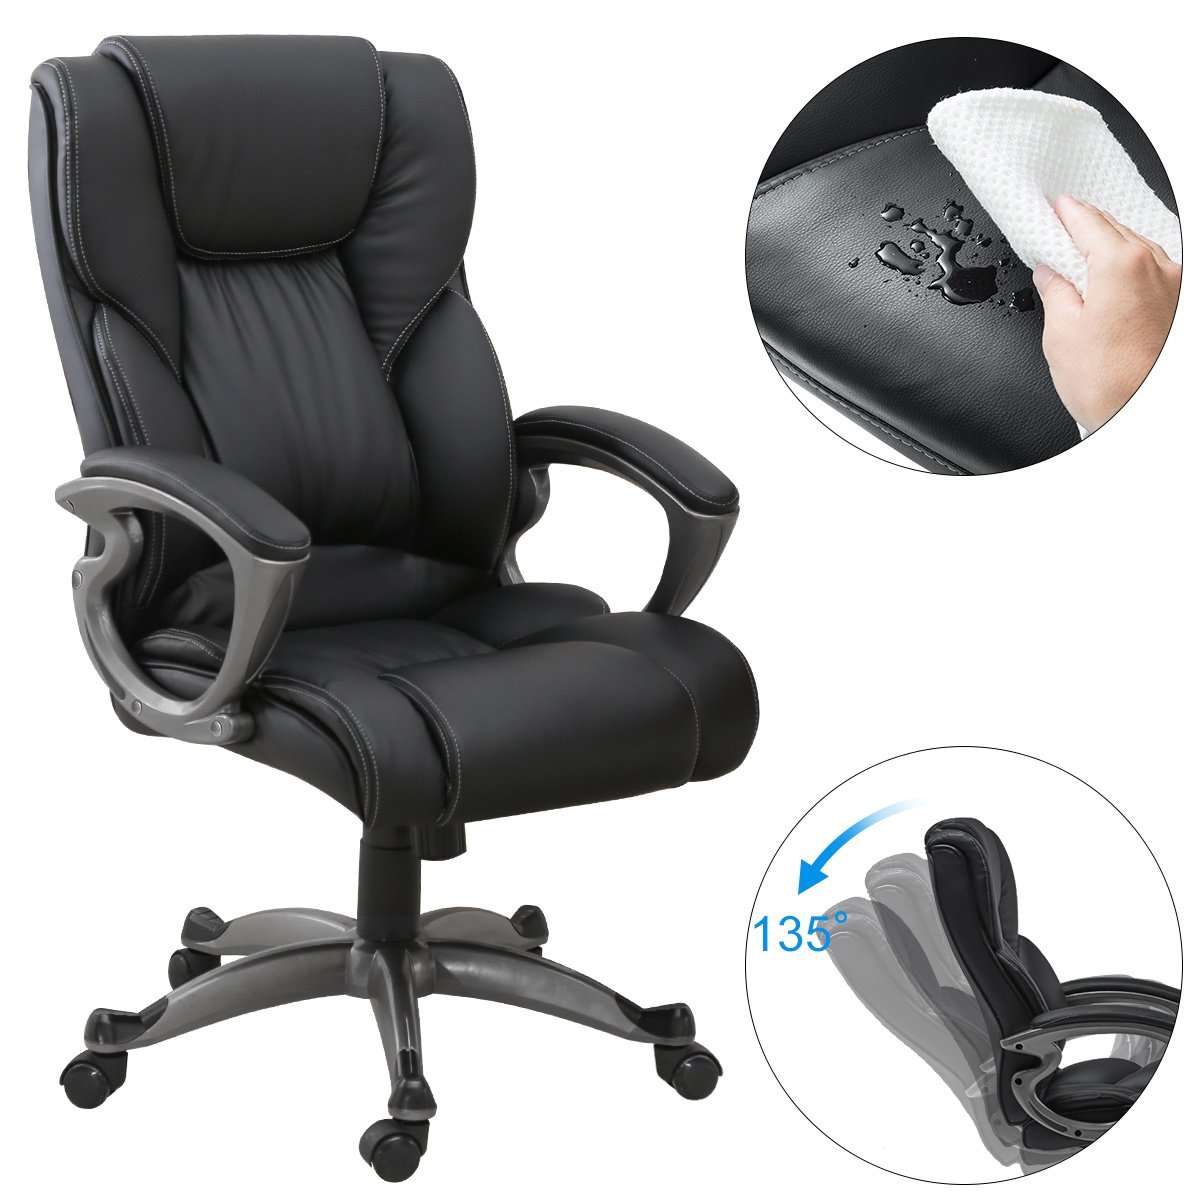 YAMASORO Leather Office Chair High Back Computer Gaming Desk Chair Executive Ergonomic Lumbar Support Black